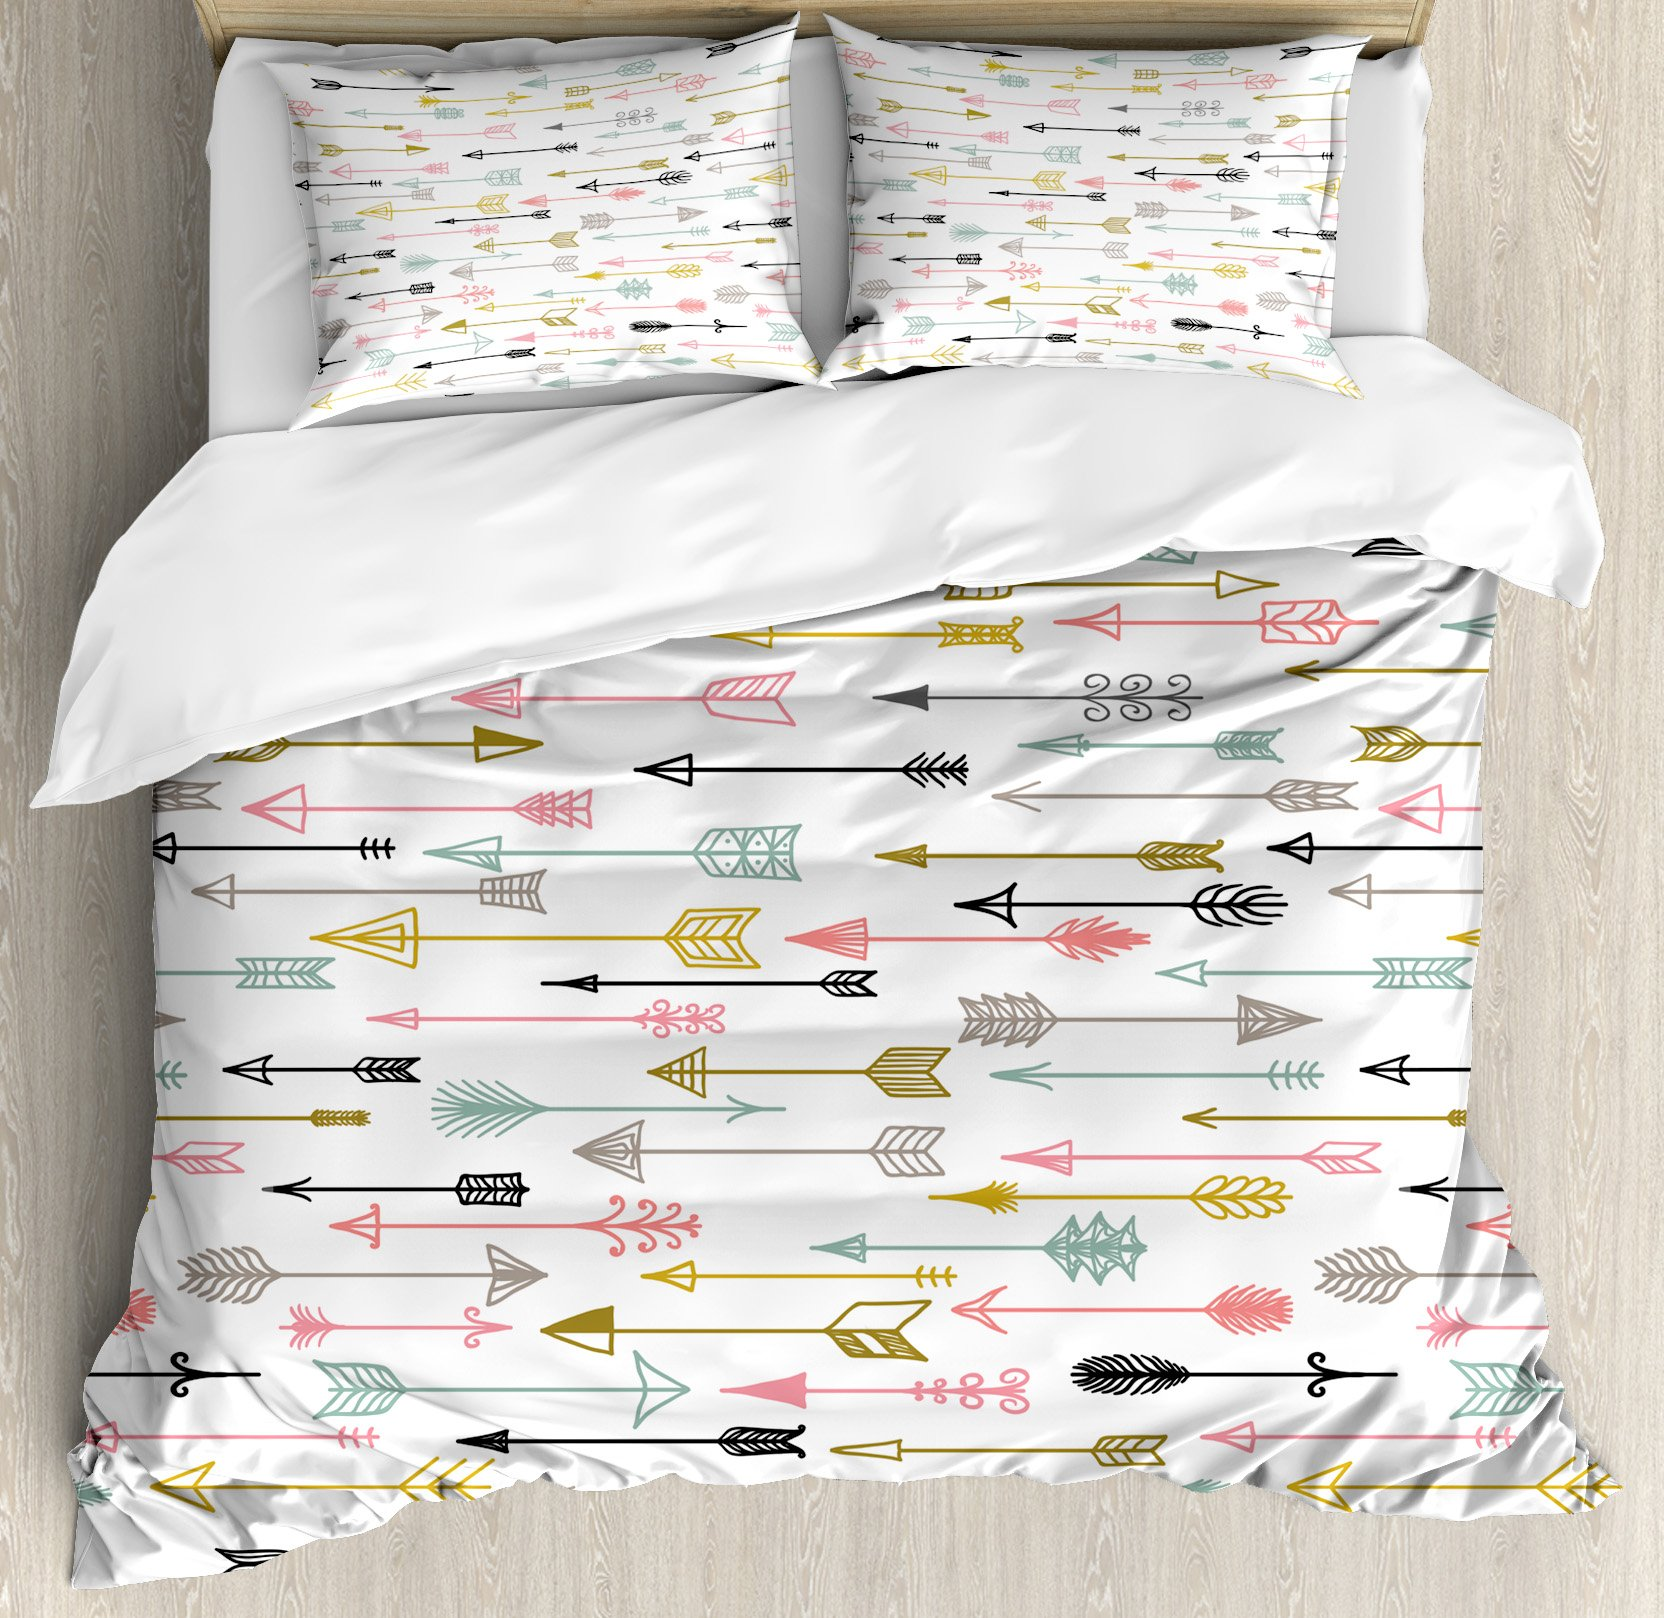 Arrow Decor Duvet Cover Set Queen Size by Ambesonne, Colorful Arrows Pattern Native American Style Art, Decorative 3 Piece Bedding Set with 2 Pillow Shams